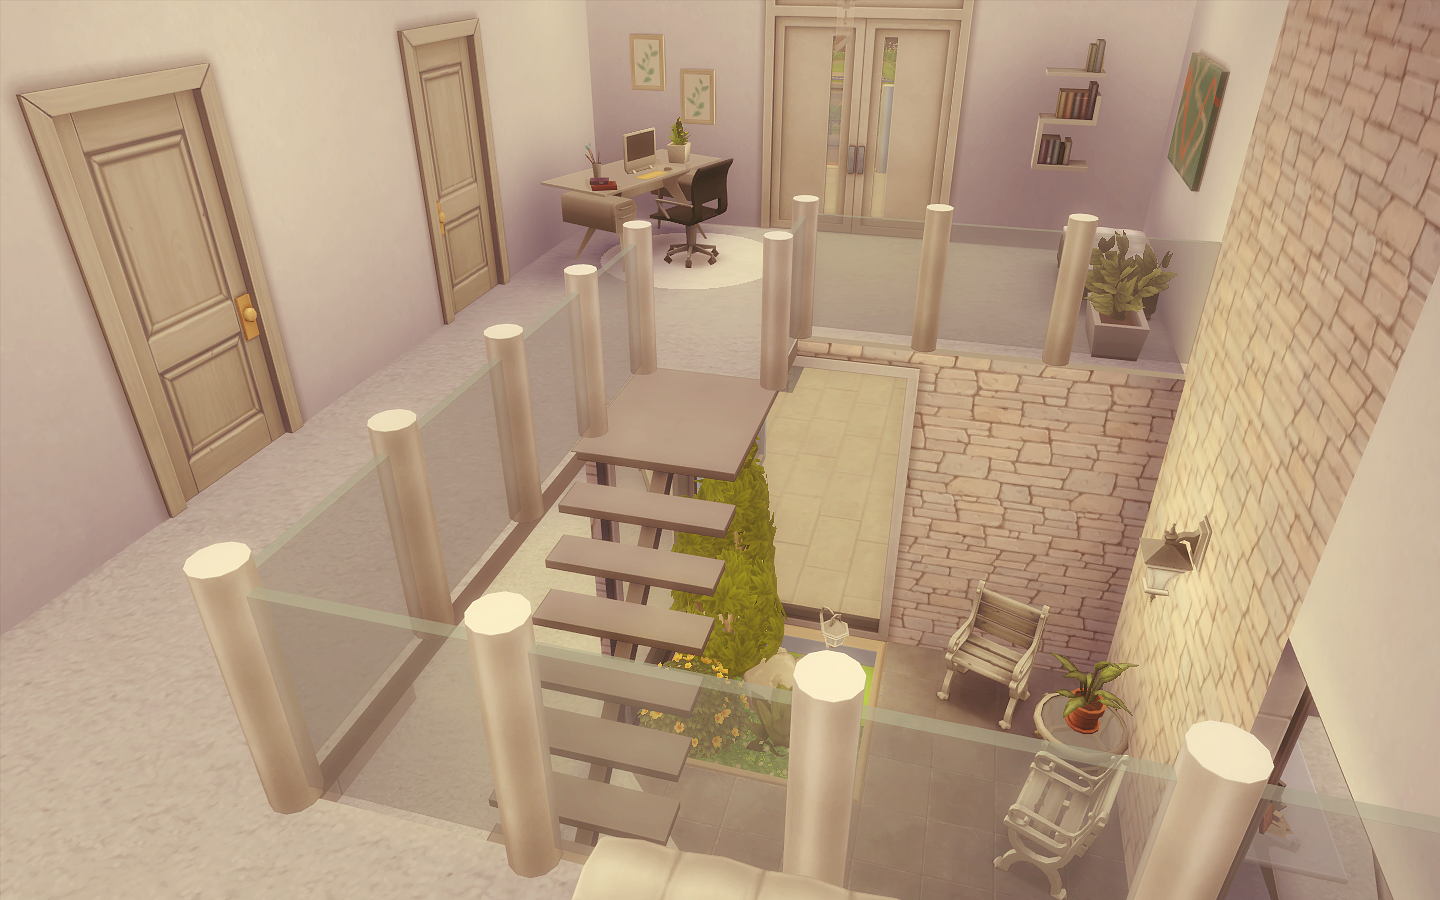 House 10 - The Sims 4 | Sims Haus, Haus ideen und Lilien